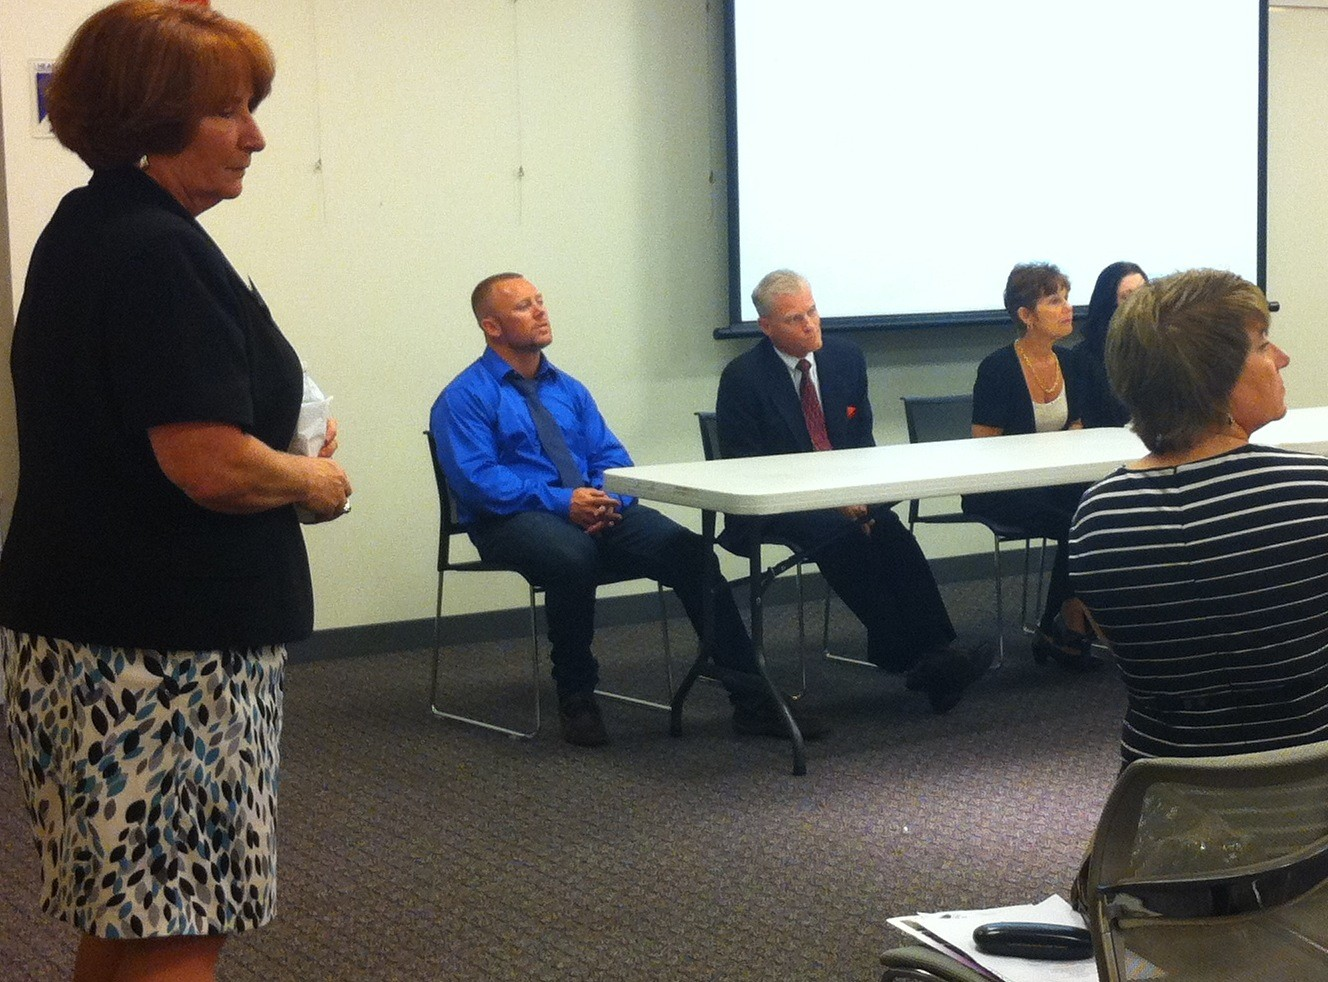 Addiction counselor Karen Palmiero spoke at a Phoenix House-hosted opiate seminar at the Merrick Library on June 18.